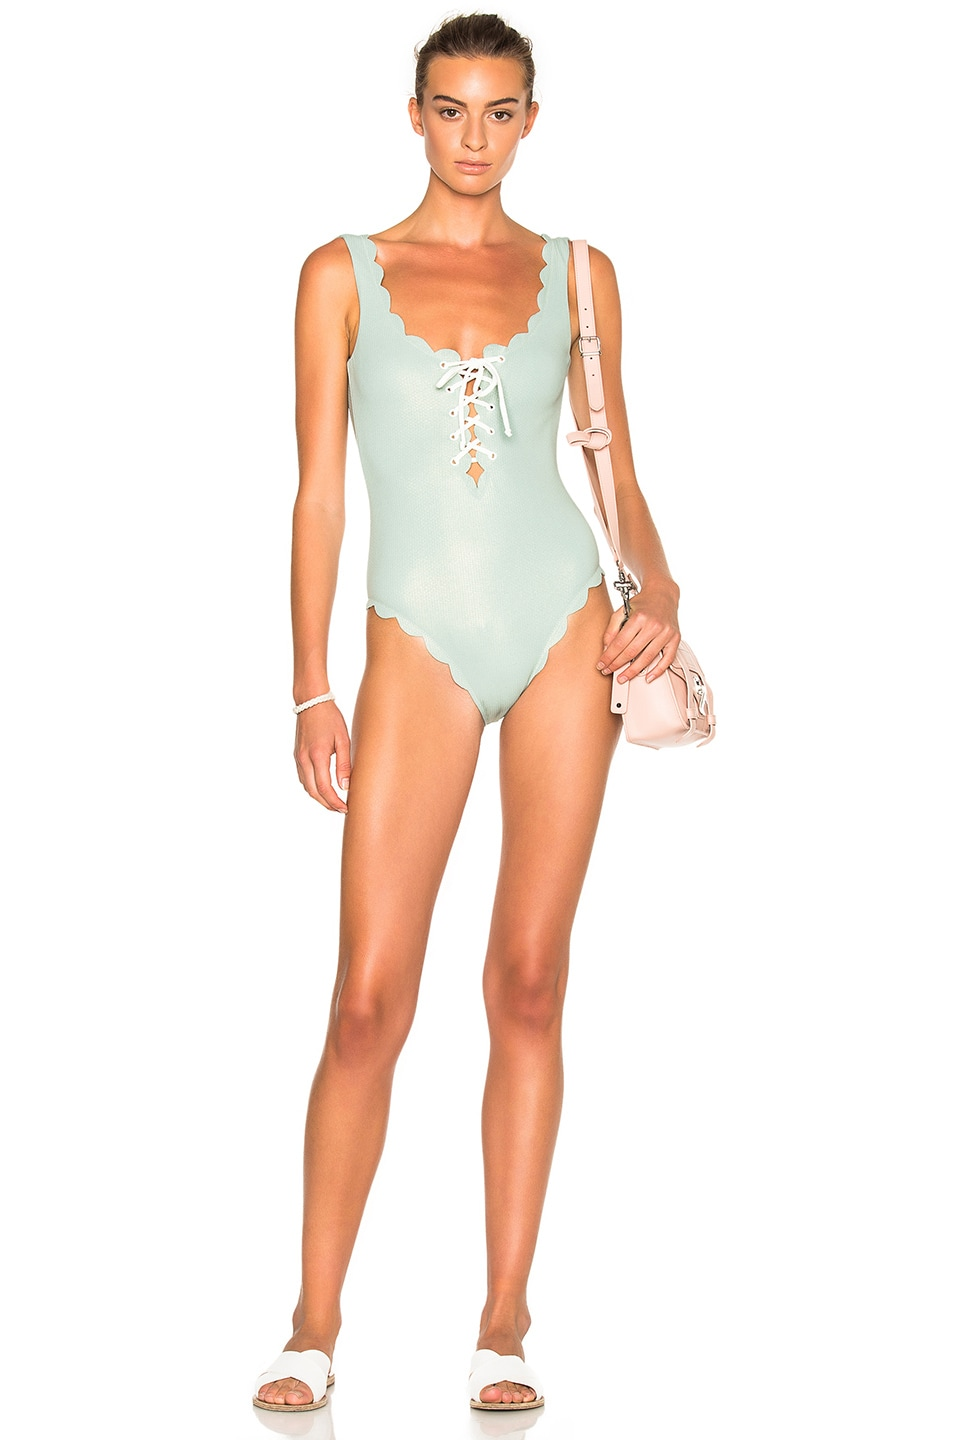 23ddfbfdf3f Image 1 of Marysia Swim FWRD Exclusive Palm Springs Lace Up Swimsuit in  Pale Blue